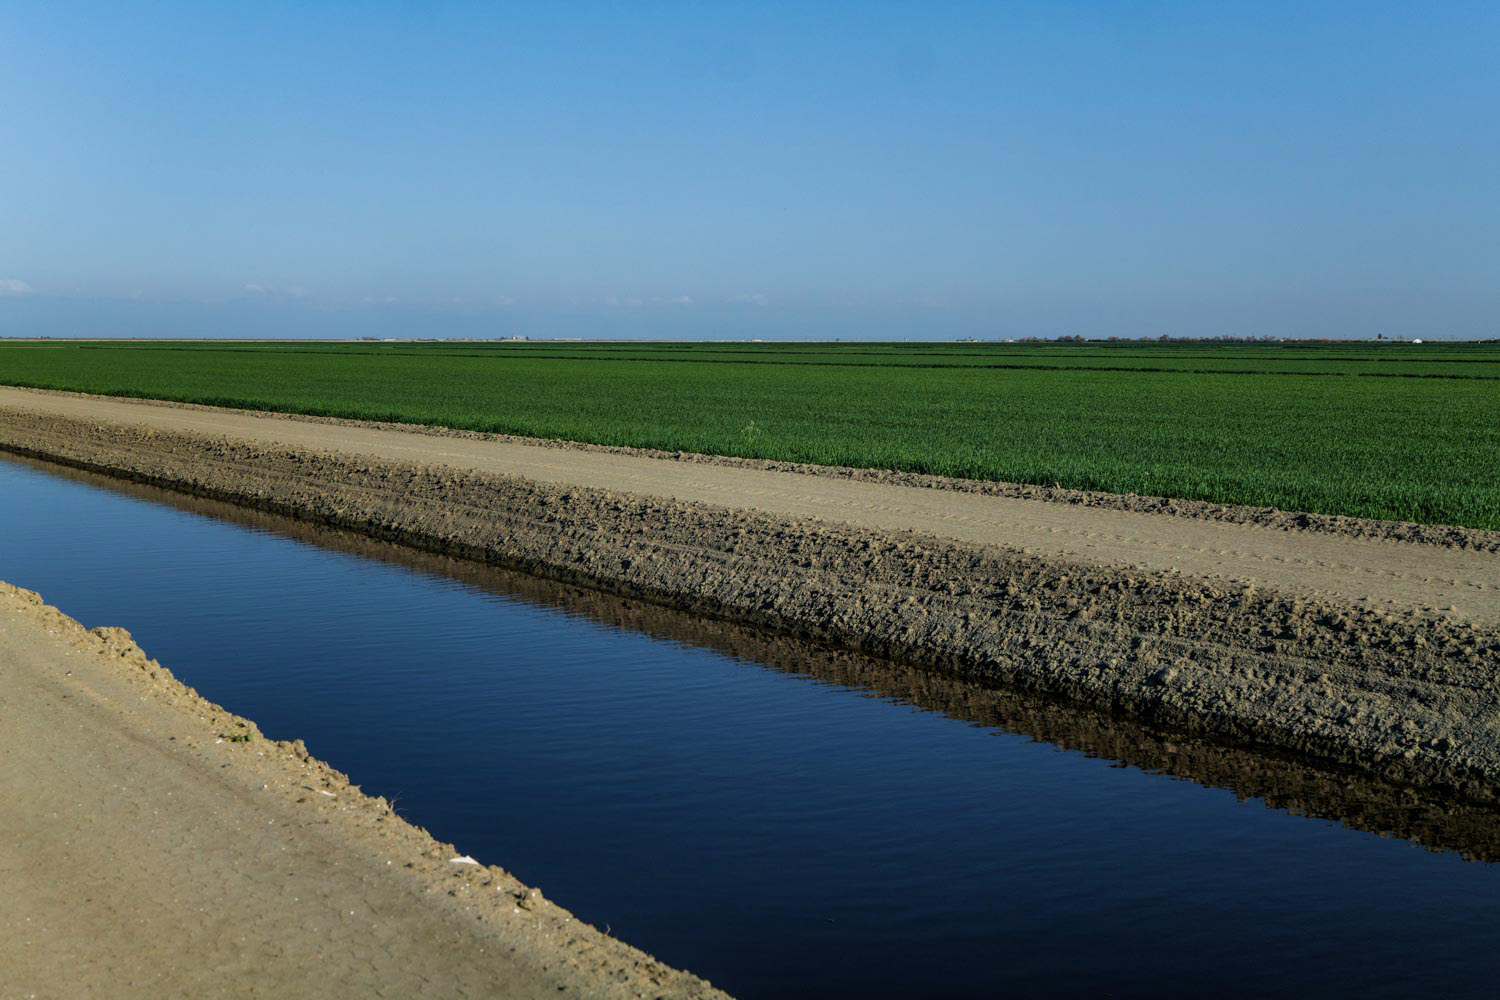 Canals are filled with groundwater that flows alongside the Corcoran Cross Creek Levee.